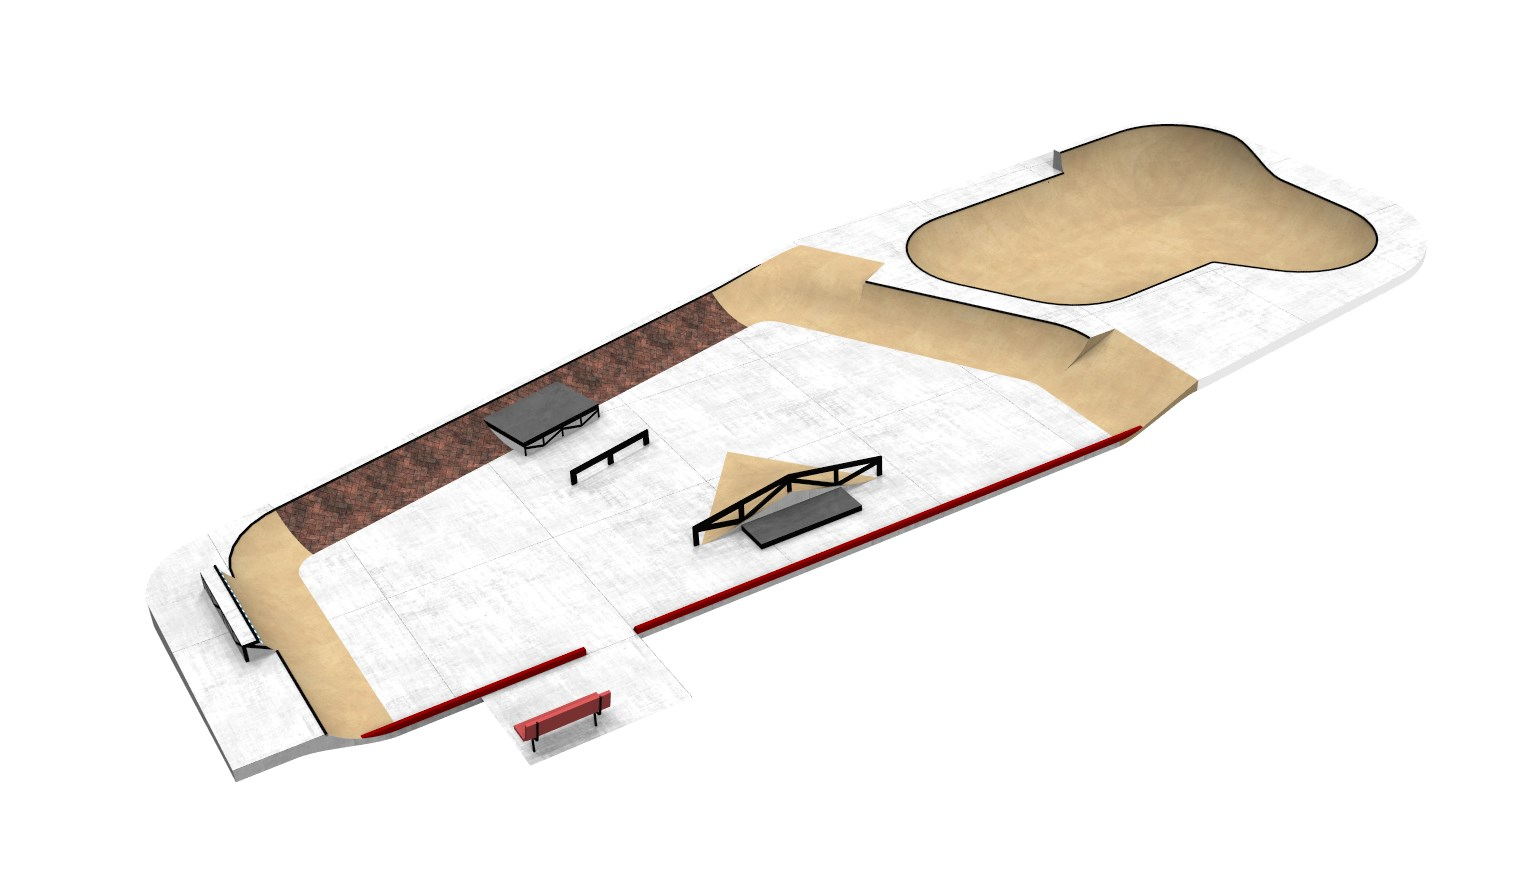 The skate park with added features if additional funding goals are reached!